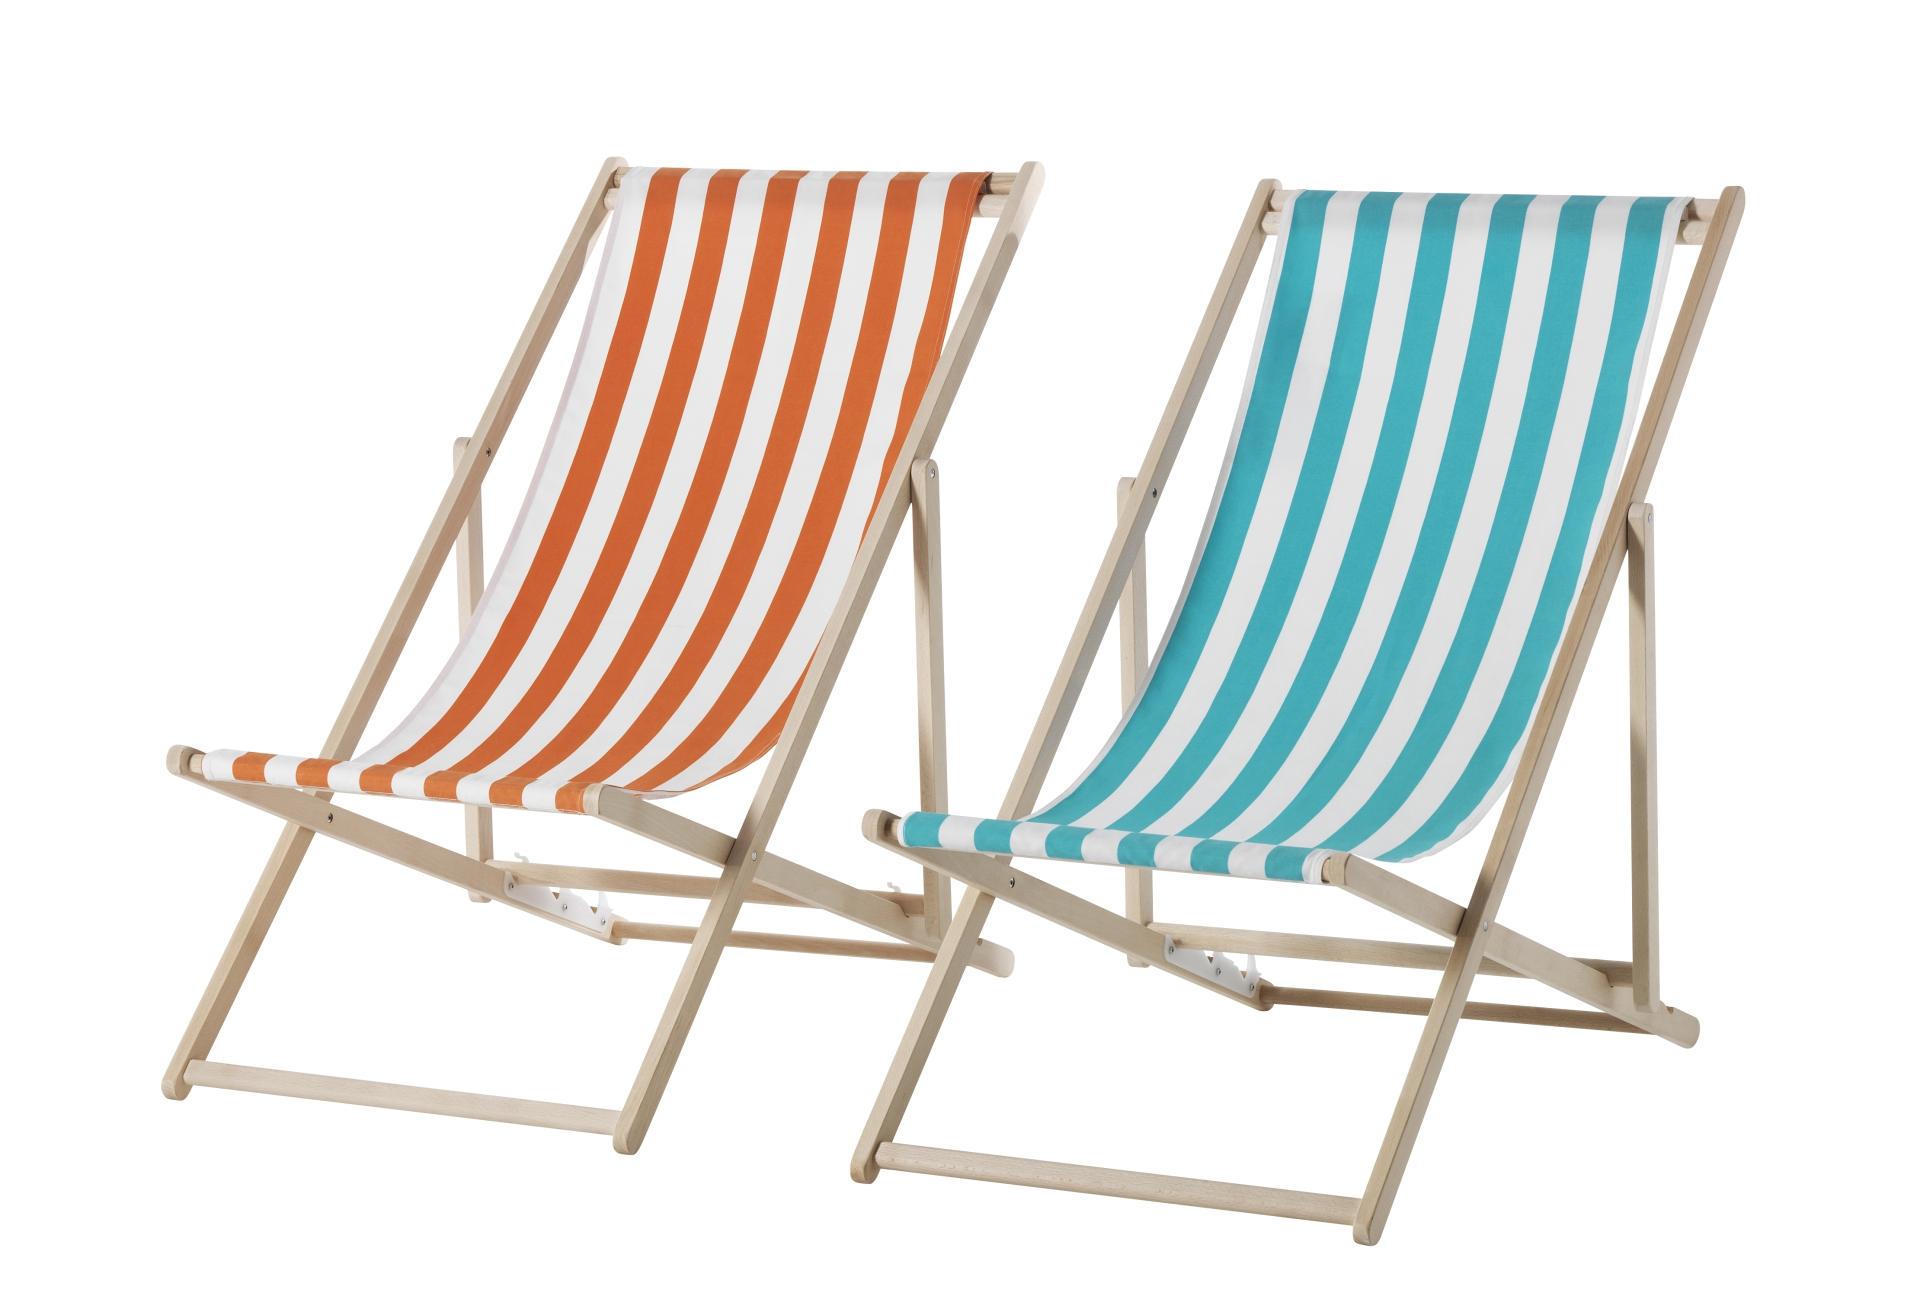 Beach Chairs With Article Number 902 280 08